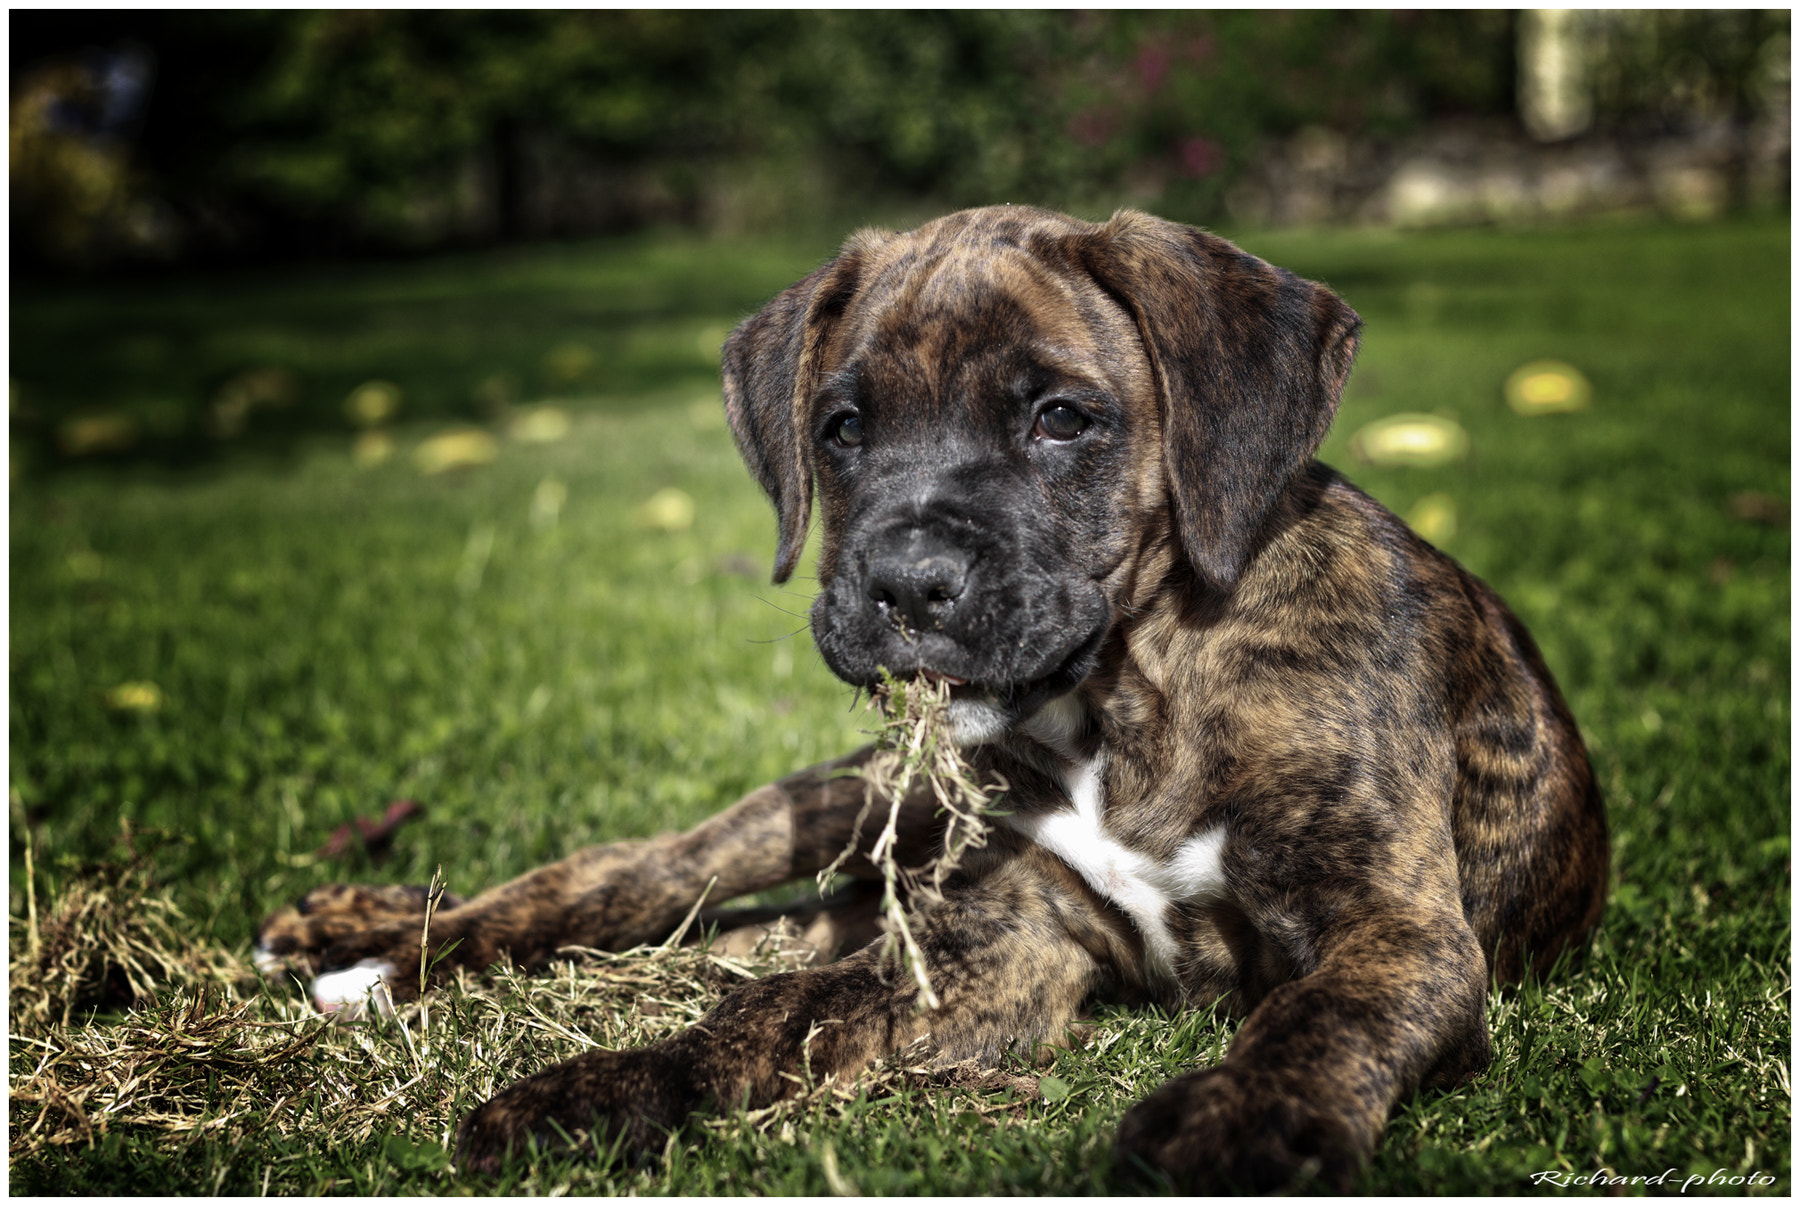 Photograph Le chiot by Richard Echasseriau on 500px